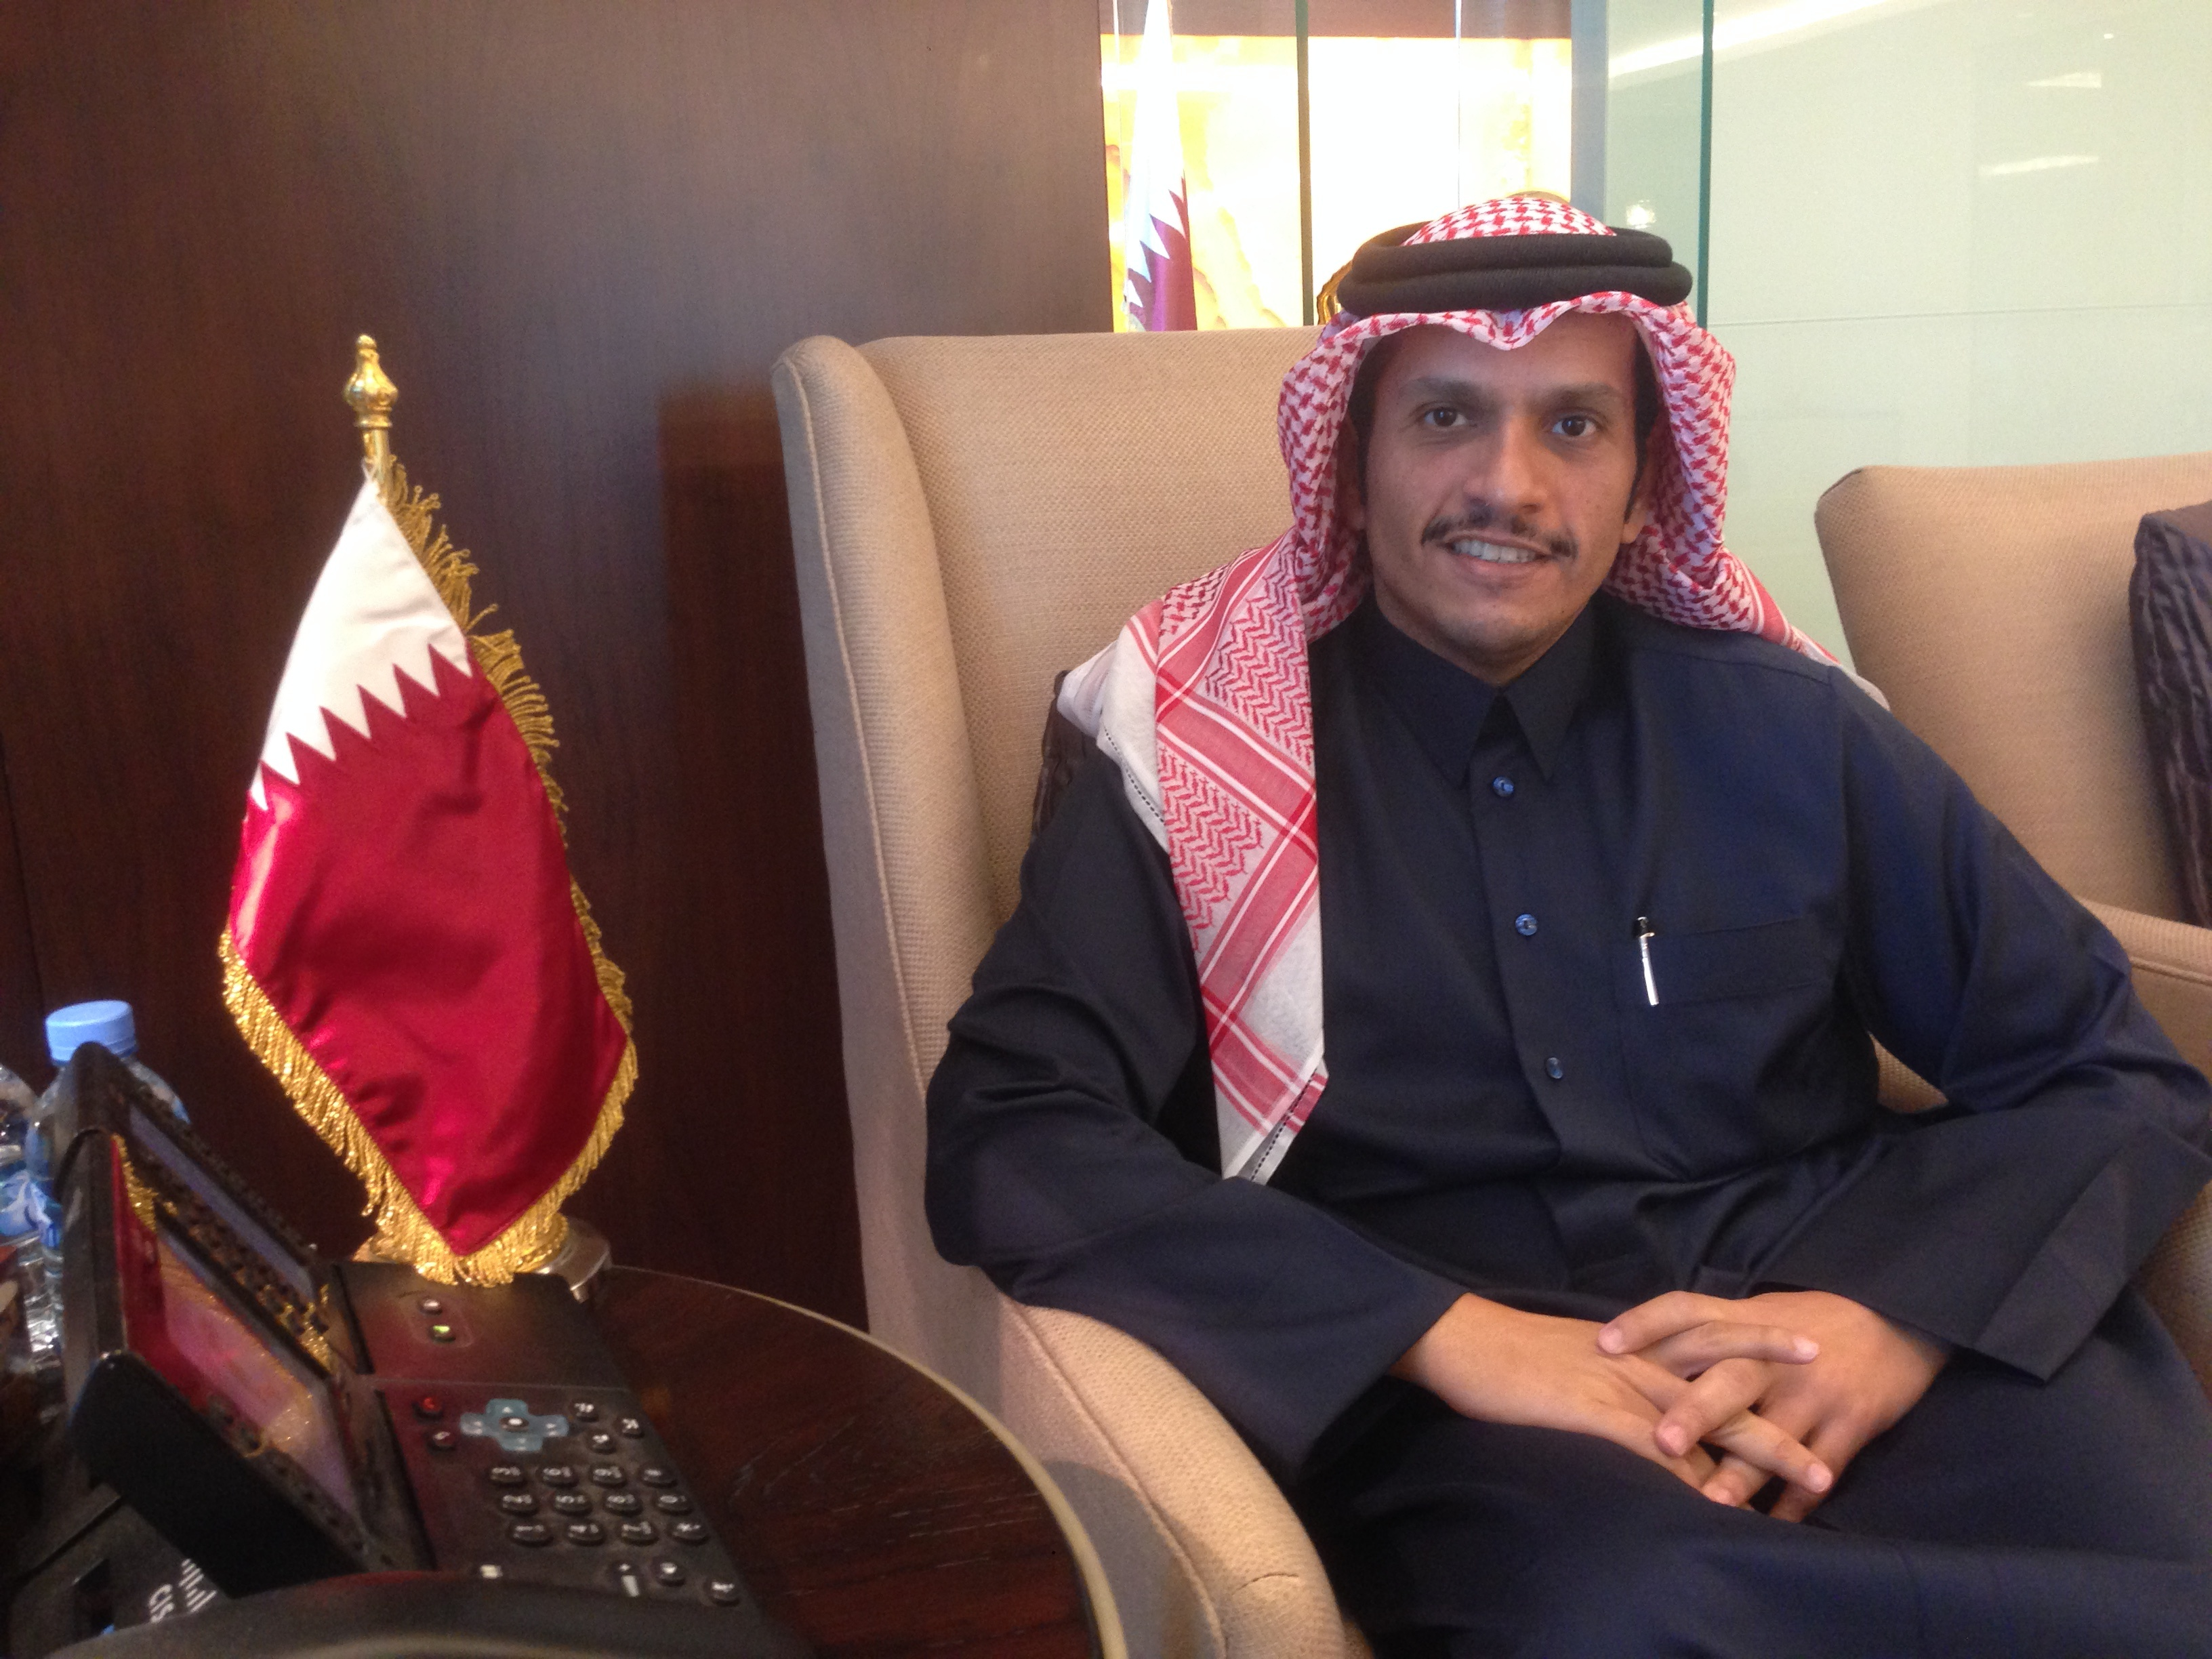 """We are open to discussion"""" : exclusive interview with His Excellency the Qatari Foreign Minister Sheikh Mohammed bin Abdulrahman Jassim Al-Thani by Michel Taube - Opinion Internationale"""